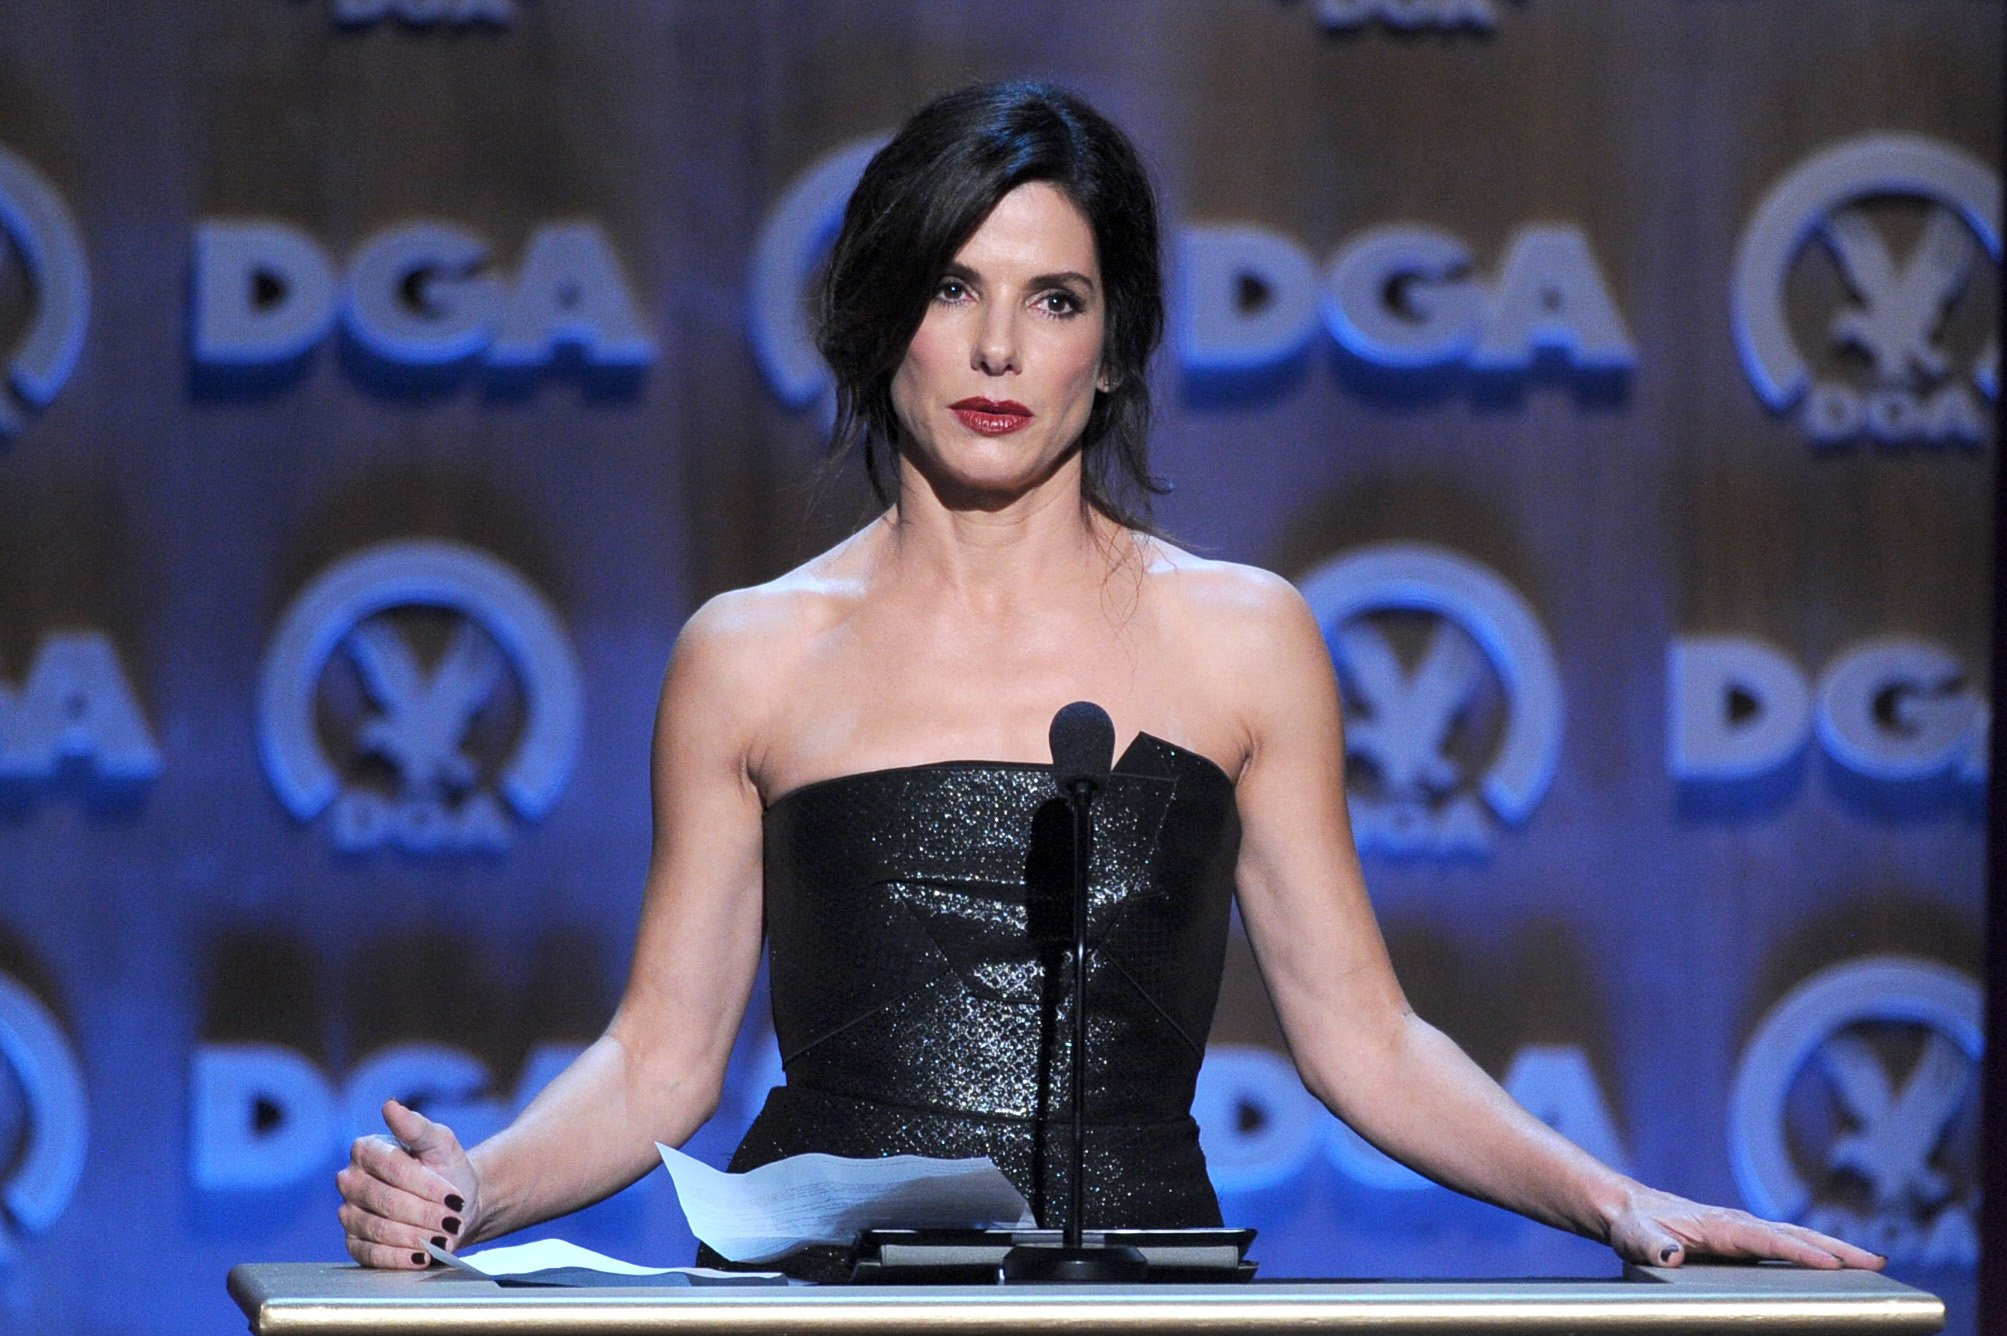 Image Credits: Getty Images / Alberto E. Rodriguez | Actress Sandra Bullock speaks onstage at the 66th Annual Directors Guild Of America Awards held at the Hyatt Regency Century Plaza on January 25, 2014 in Century City, California.